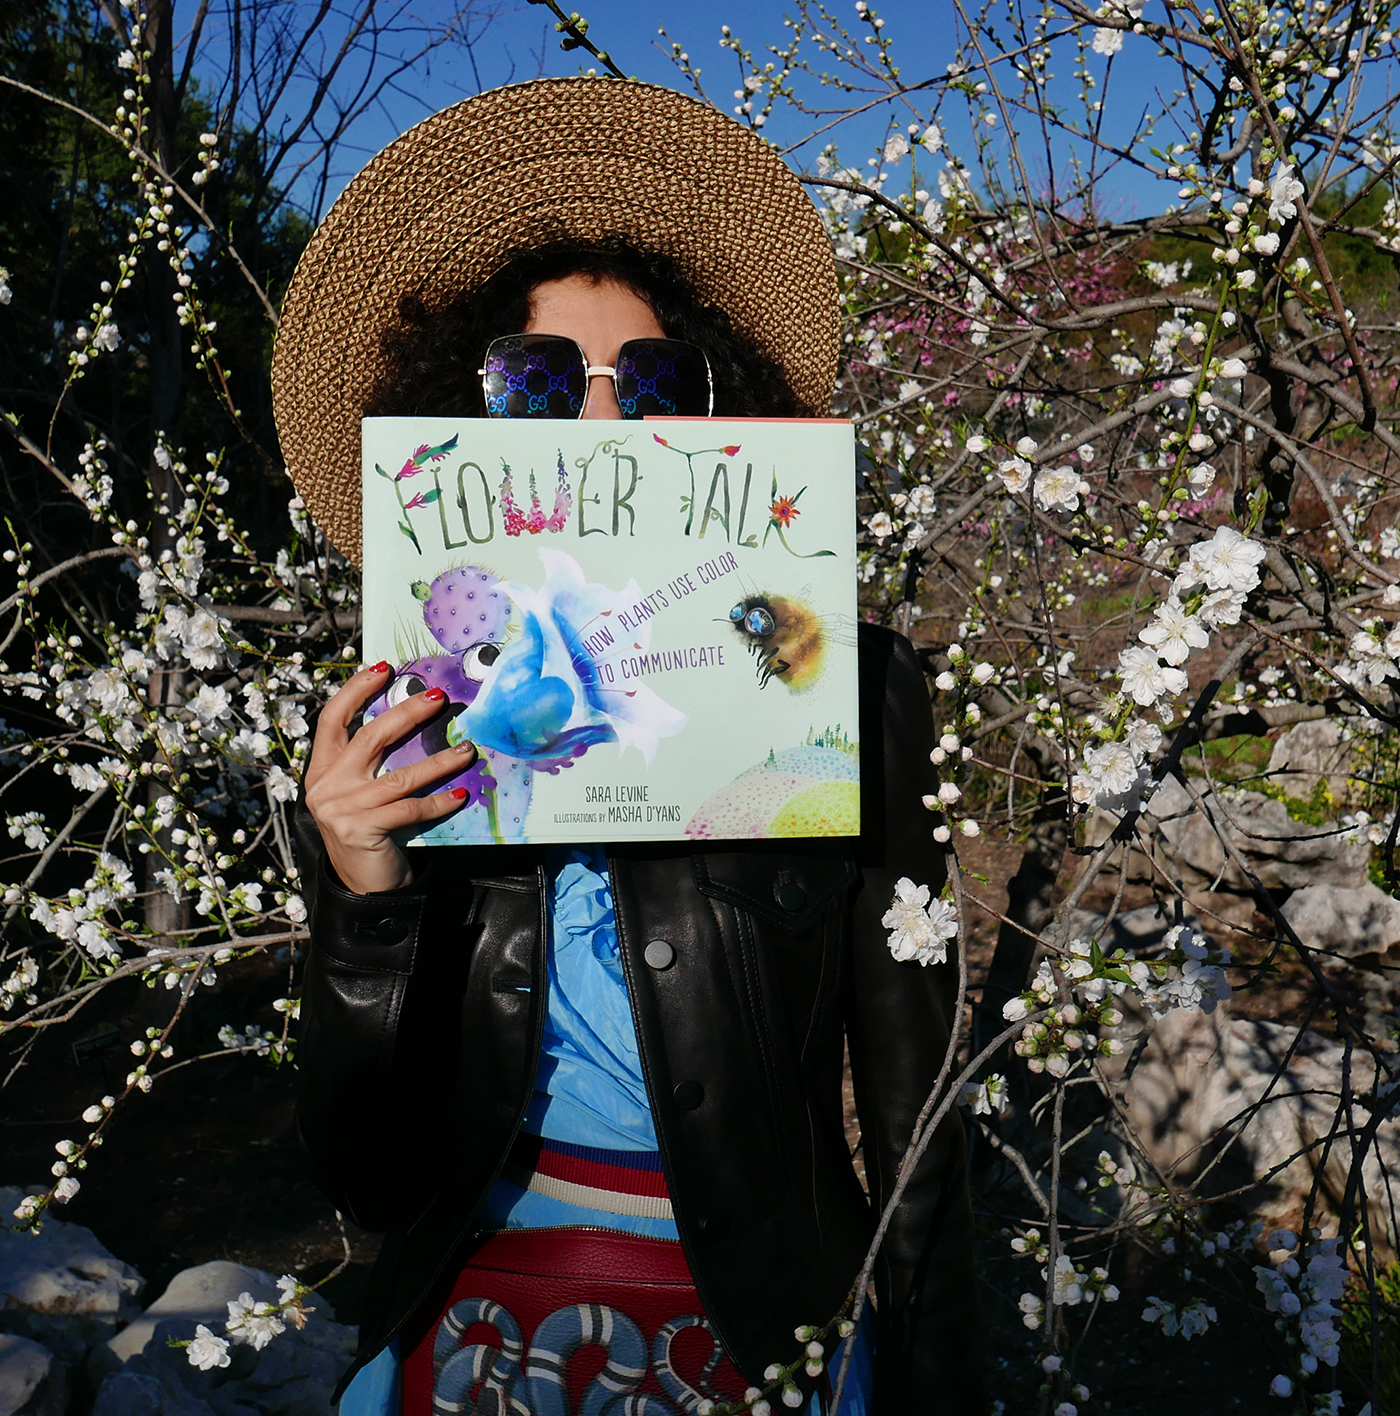 Flower Talk book by Masha D'yans reading in sakura